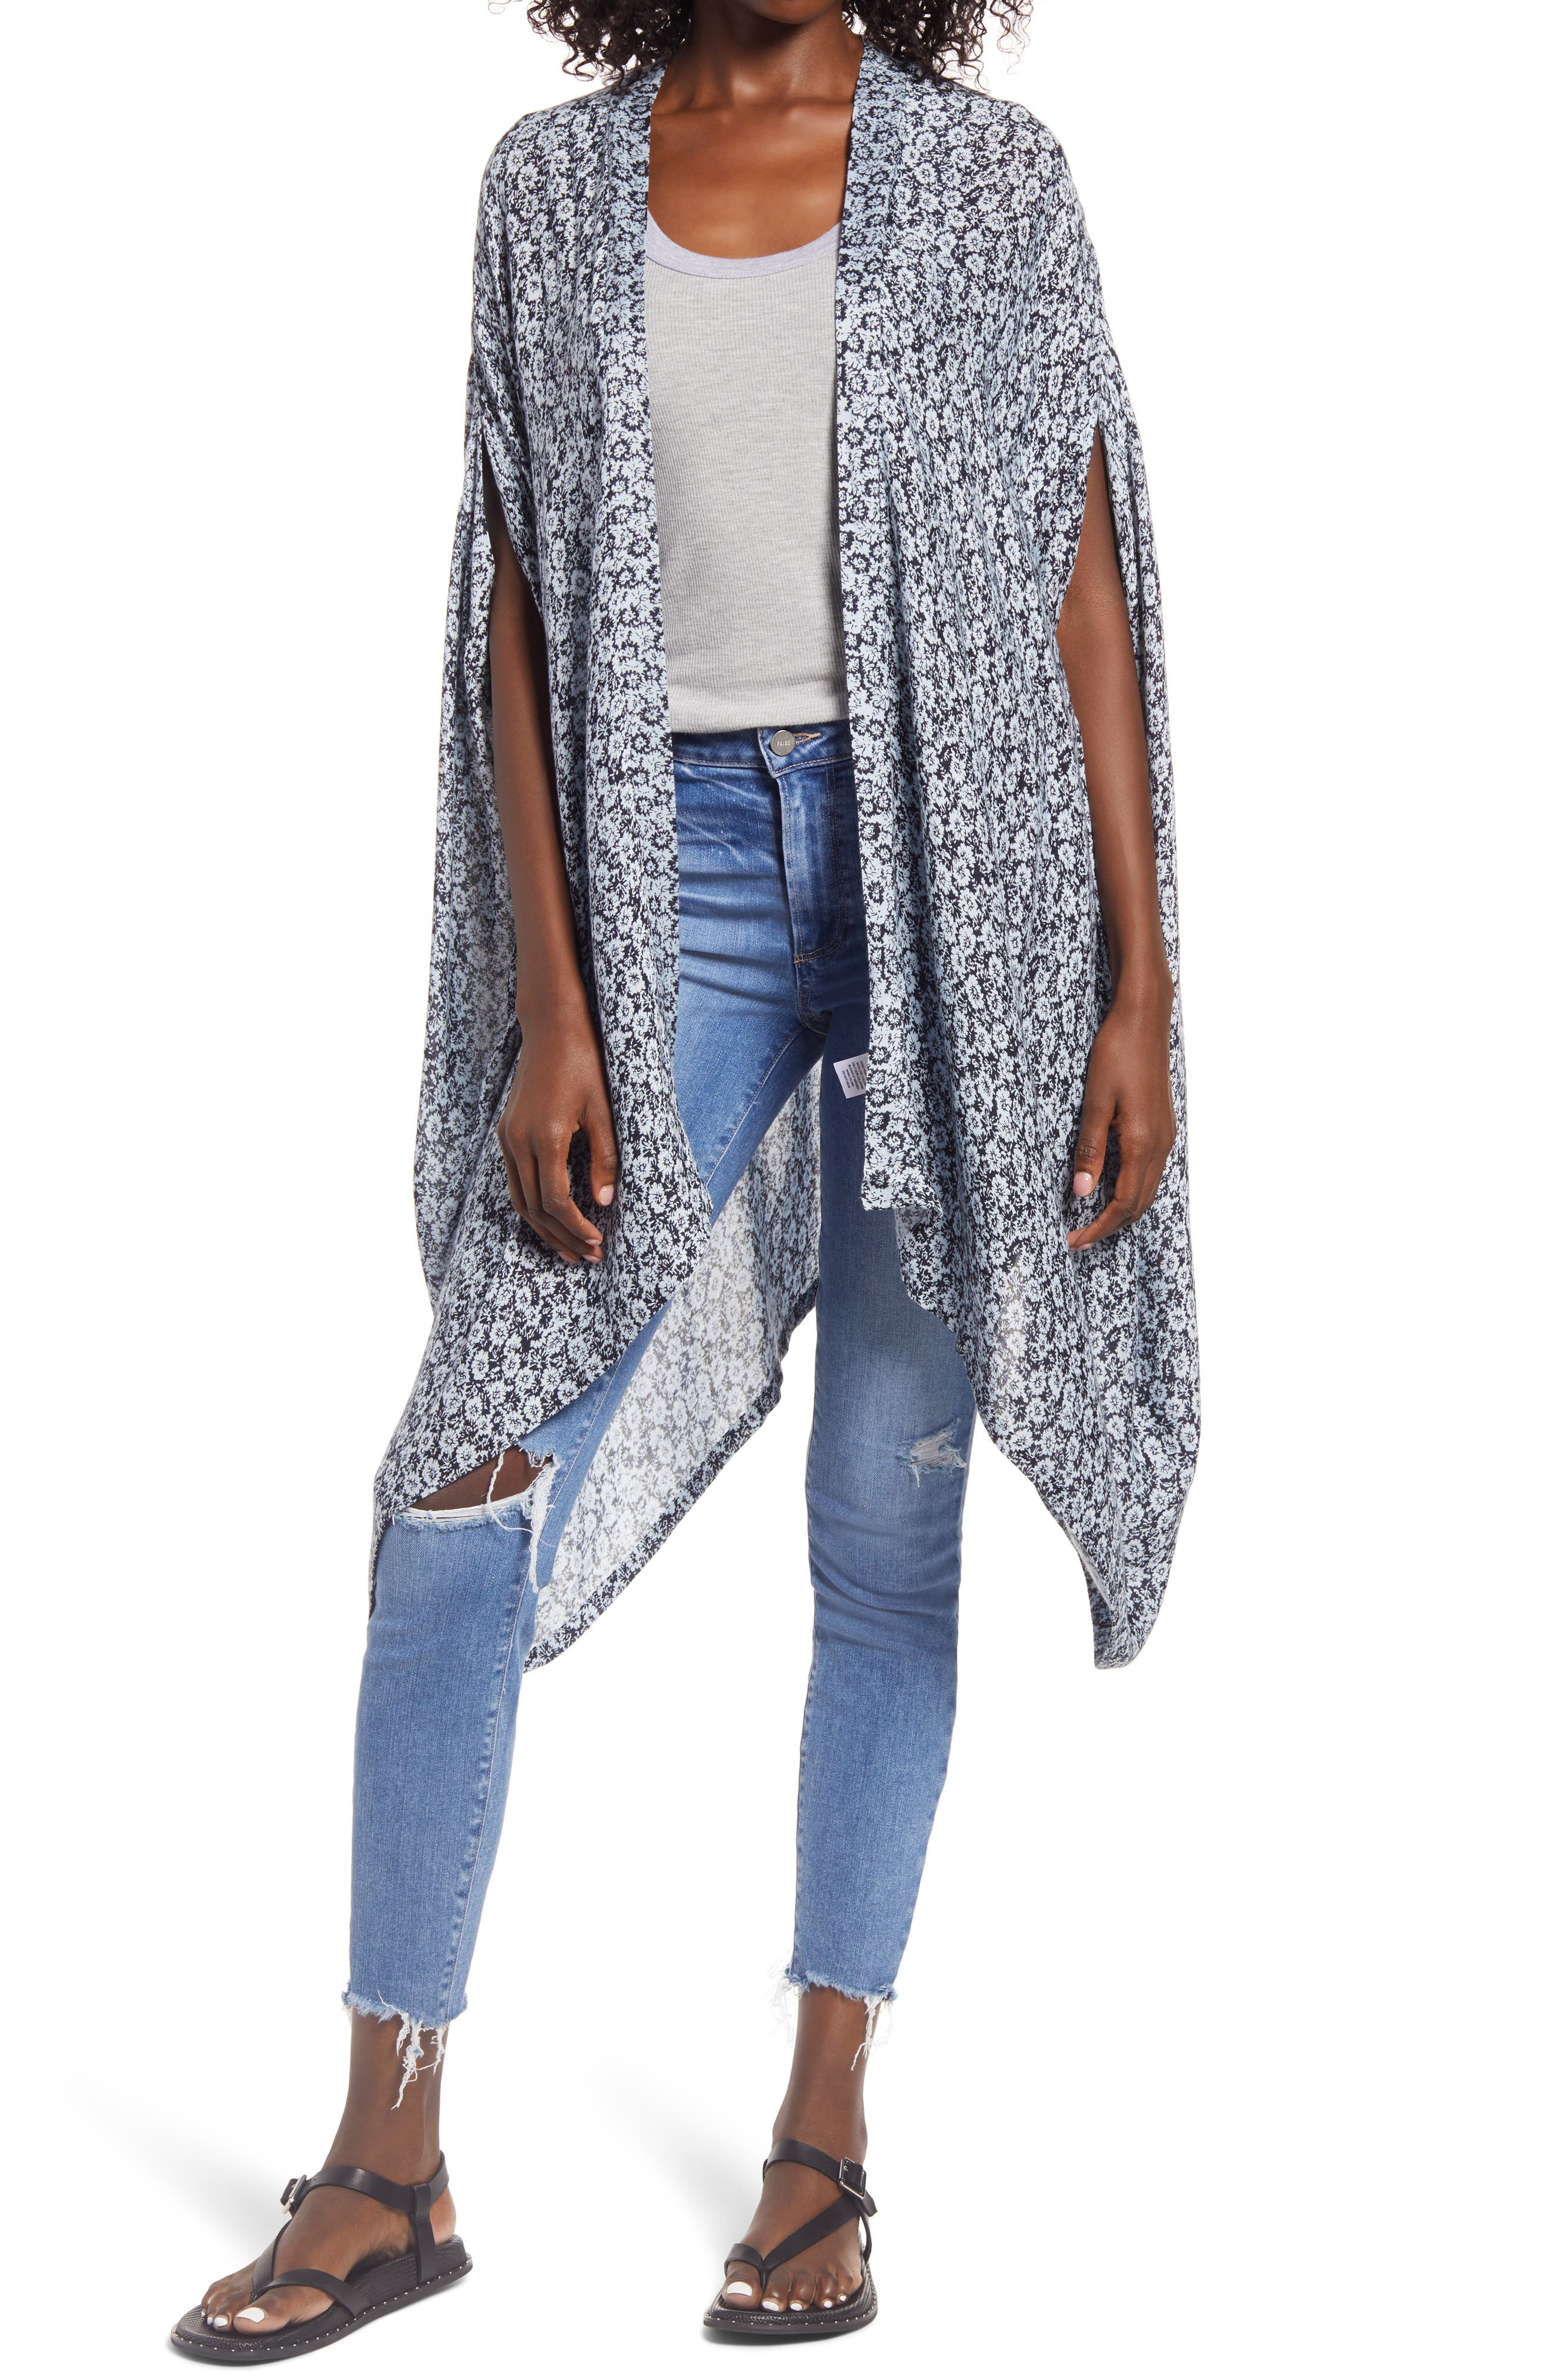 Cover up in this drapey, lightweight overlay styled with a versatile open front and a whimsical allover print. When you buy Treasure & Bond, Nordstrom will donate 2.5% of net sales to organizations that work to empower youth. Style Name: Treasure & Bond Oversize Print Ruana. Style Number: 6017716. Available in stores.